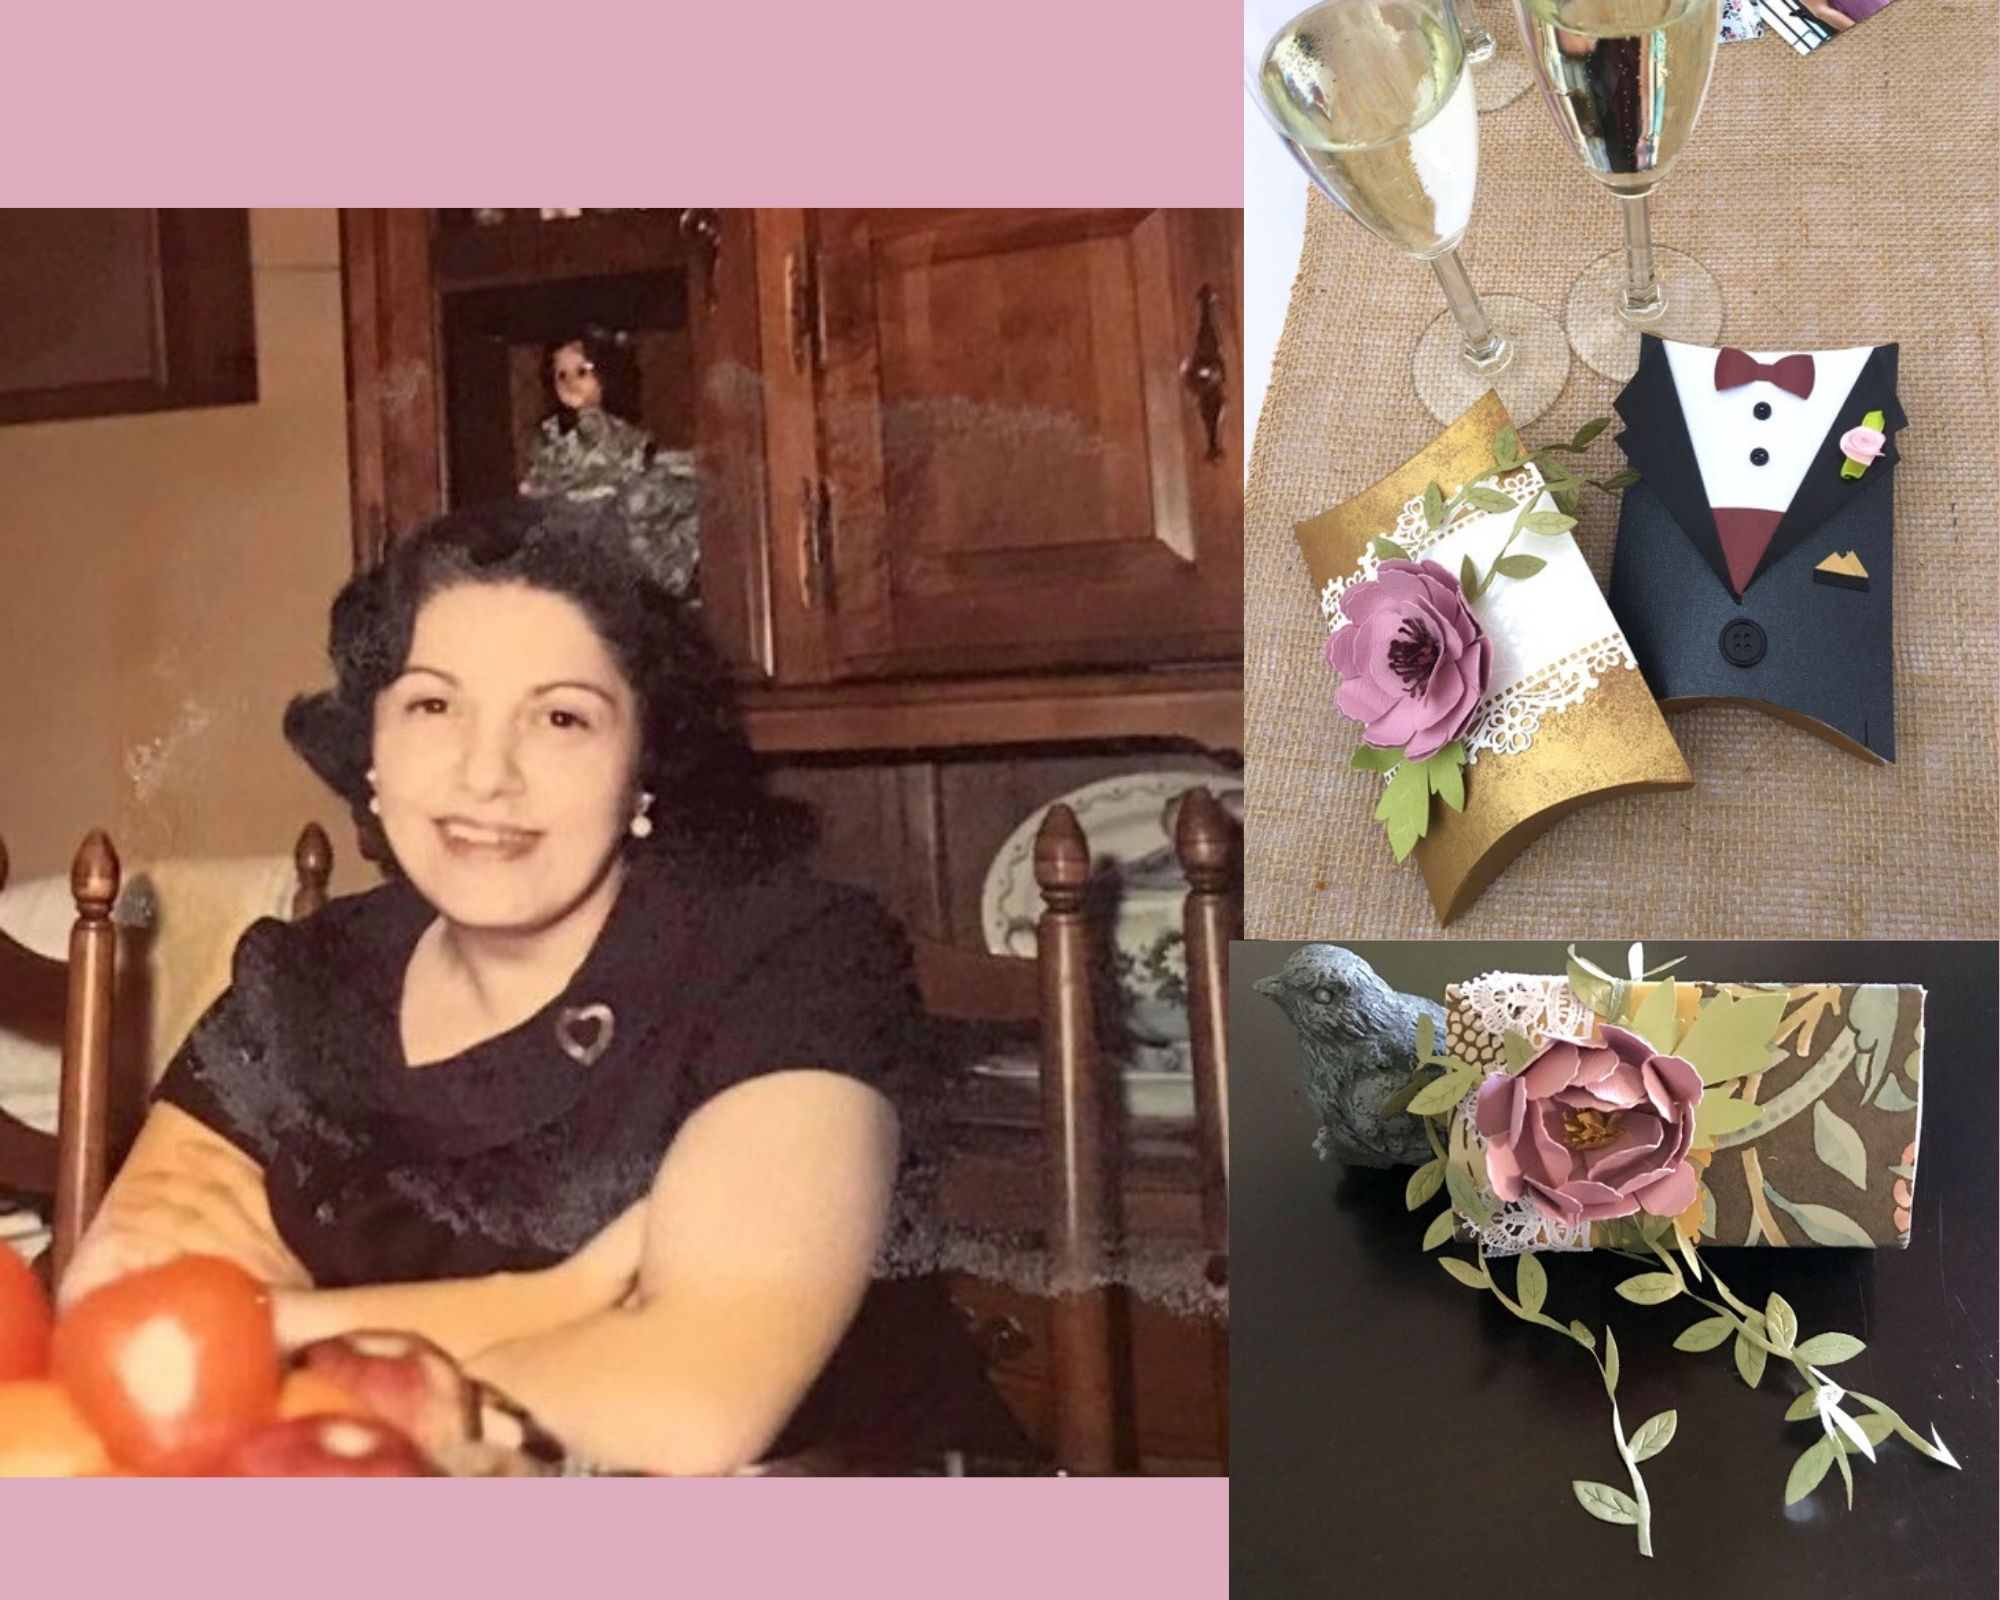 Sara Amrhein Handmade Jewelry: A New Chapter of Business Blooms 0